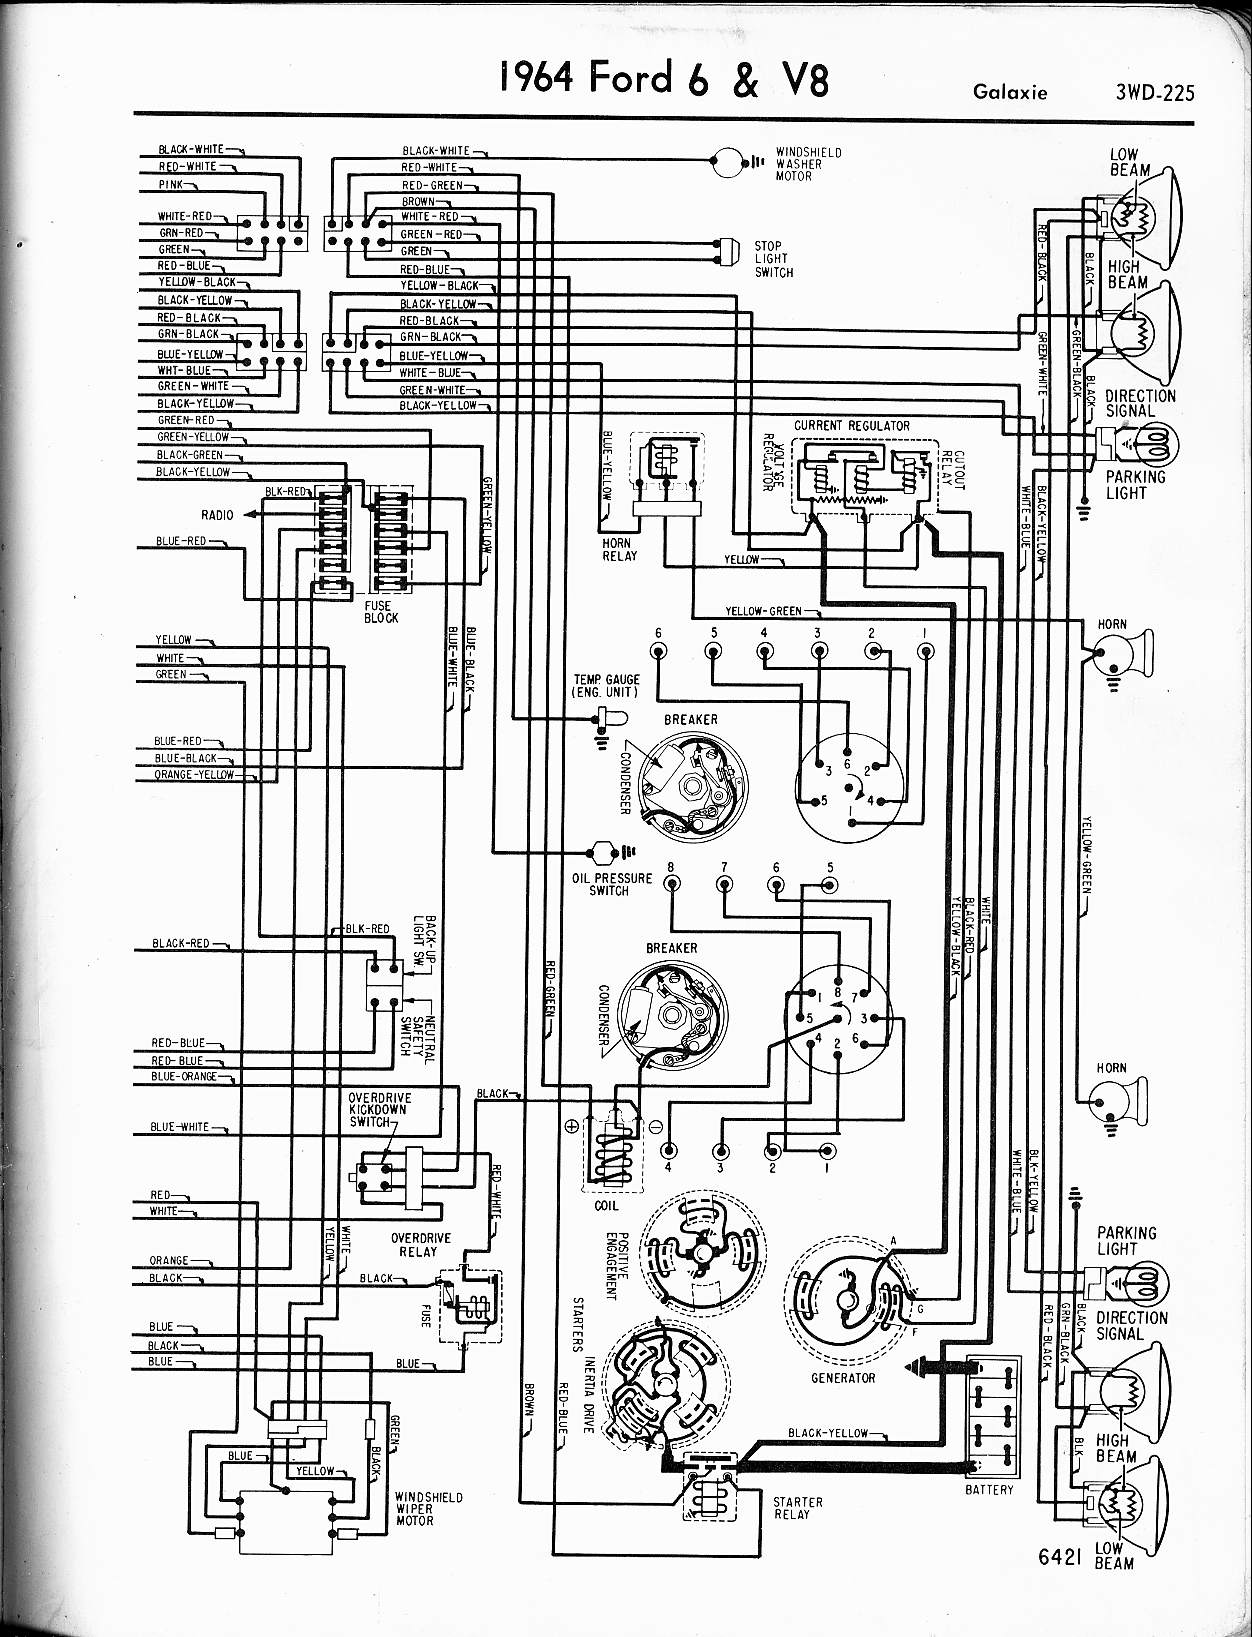 57 65 Ford Wiring Diagrams Auto Turn Signal Diagram 1964 6 V8 Galaxie Right